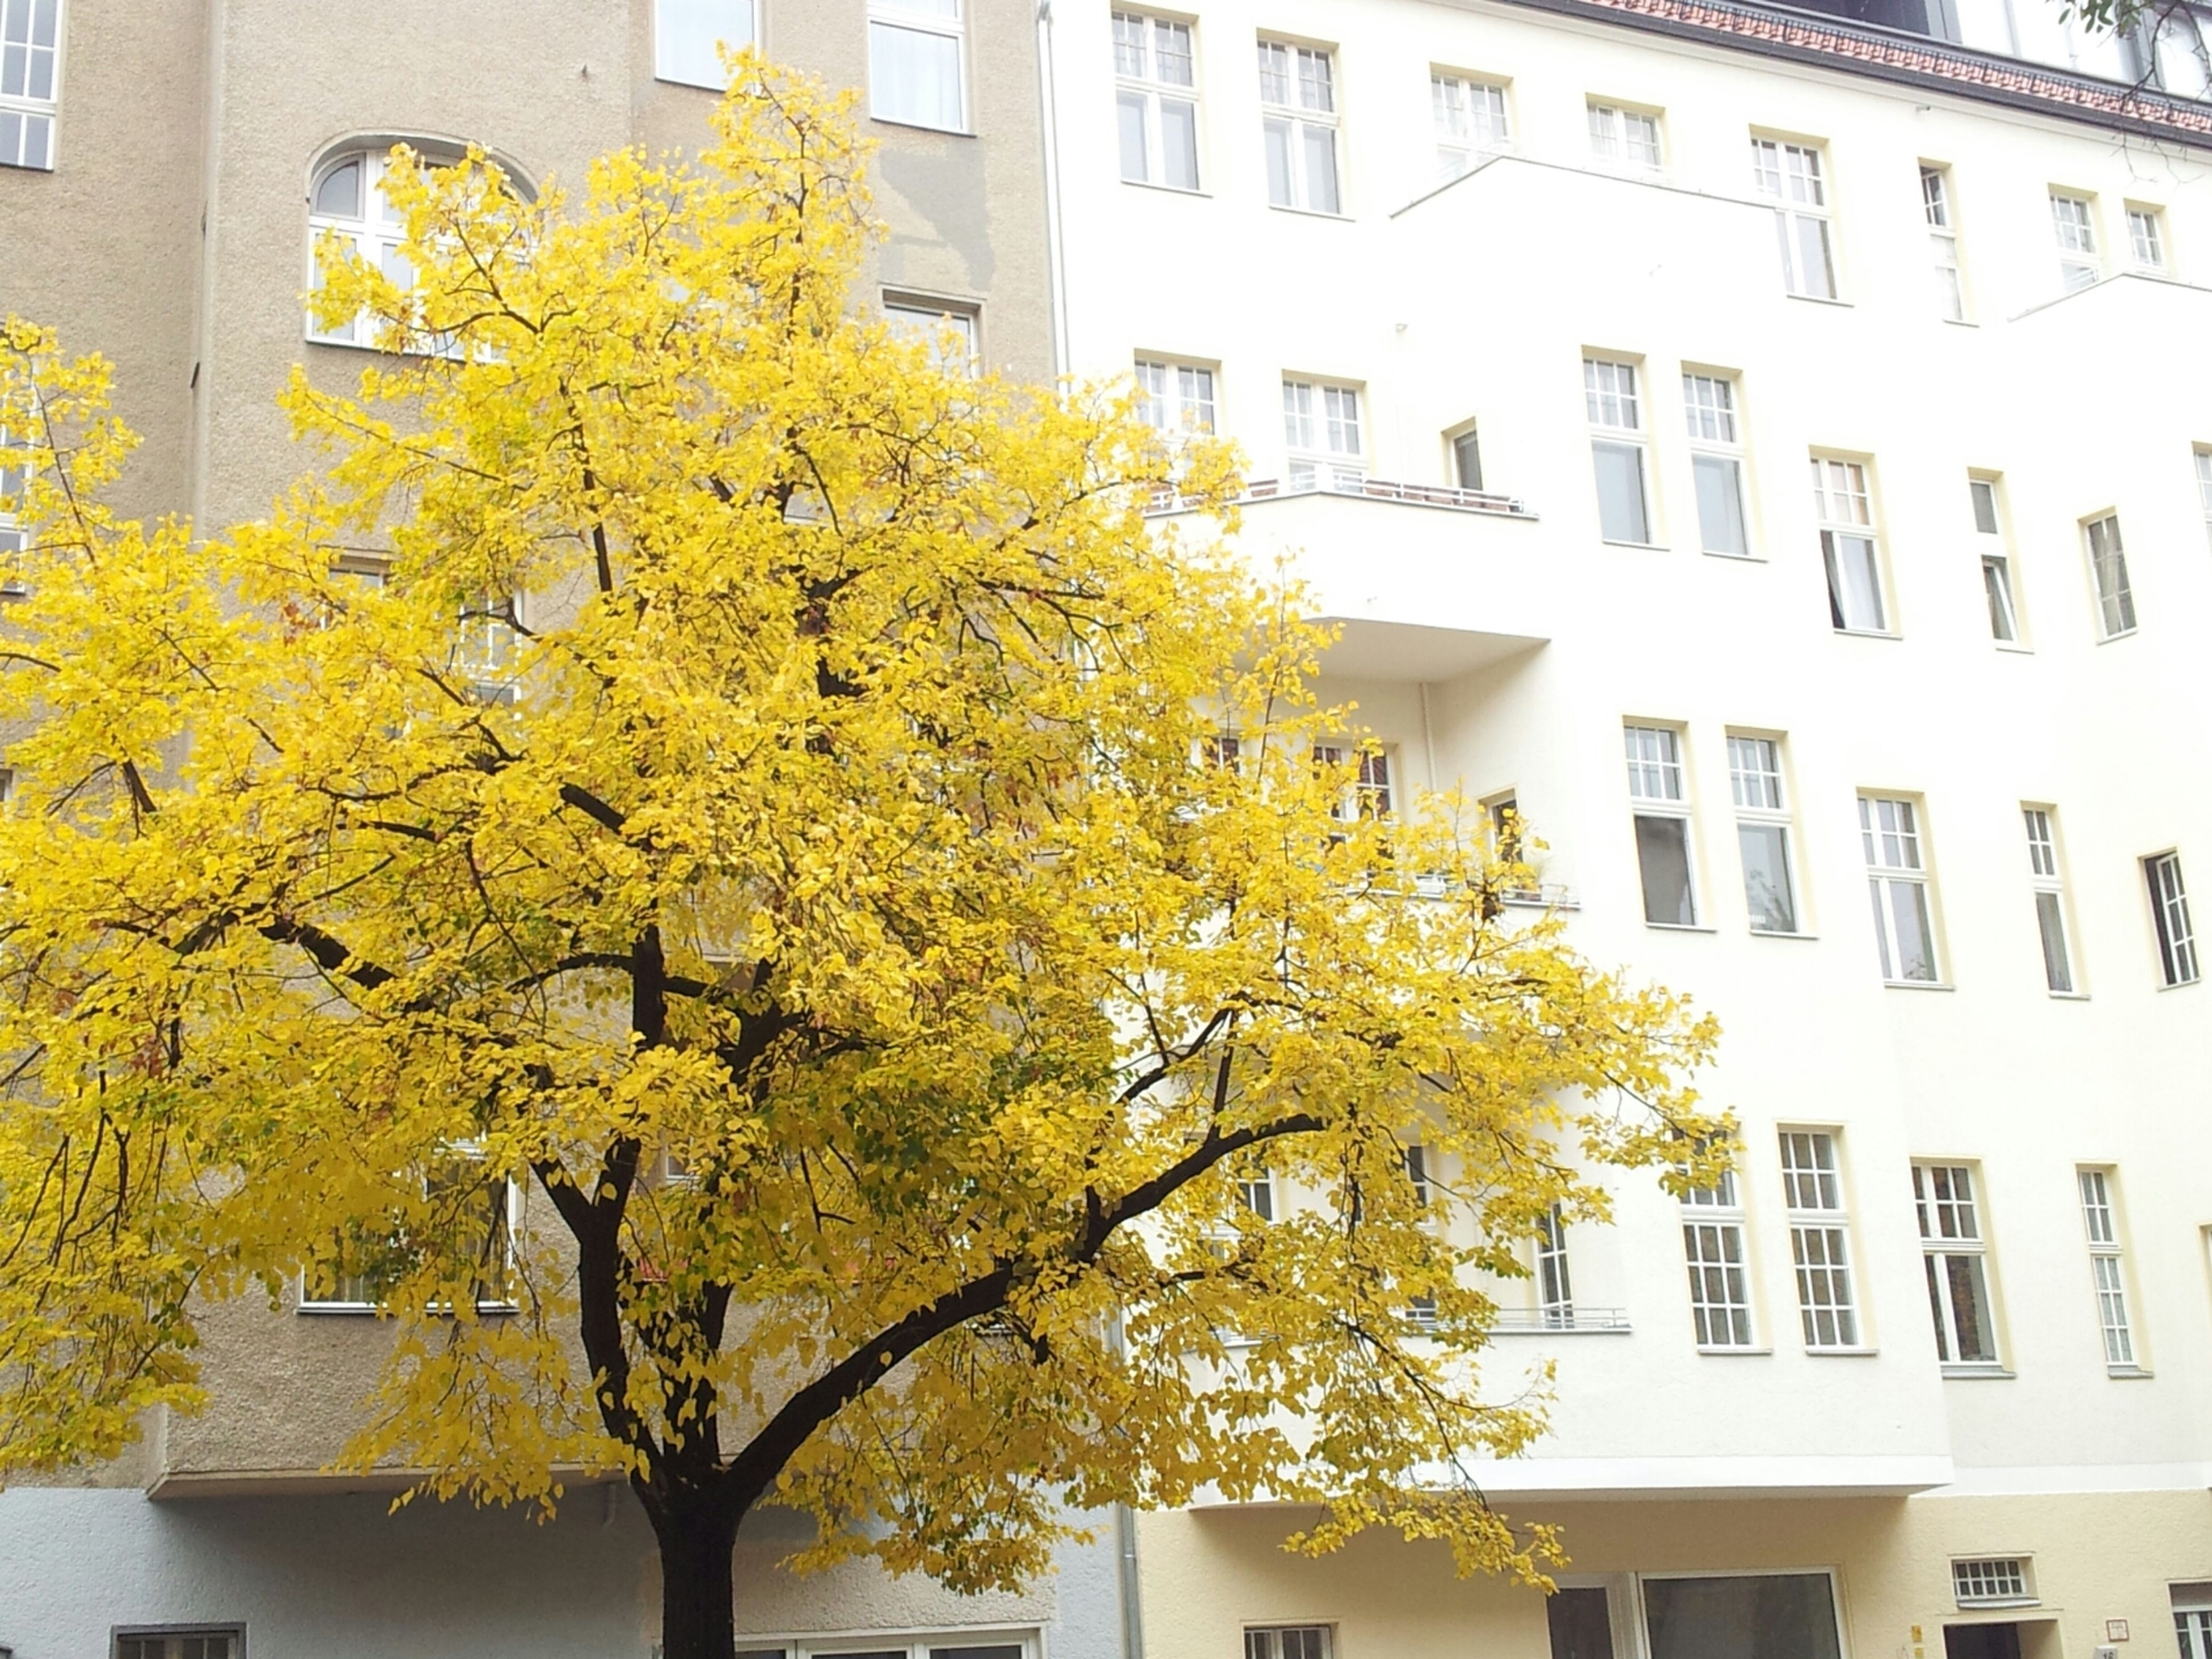 building exterior, architecture, built structure, yellow, tree, growth, flower, residential building, low angle view, window, residential structure, house, building, branch, city, day, freshness, plant, outdoors, nature